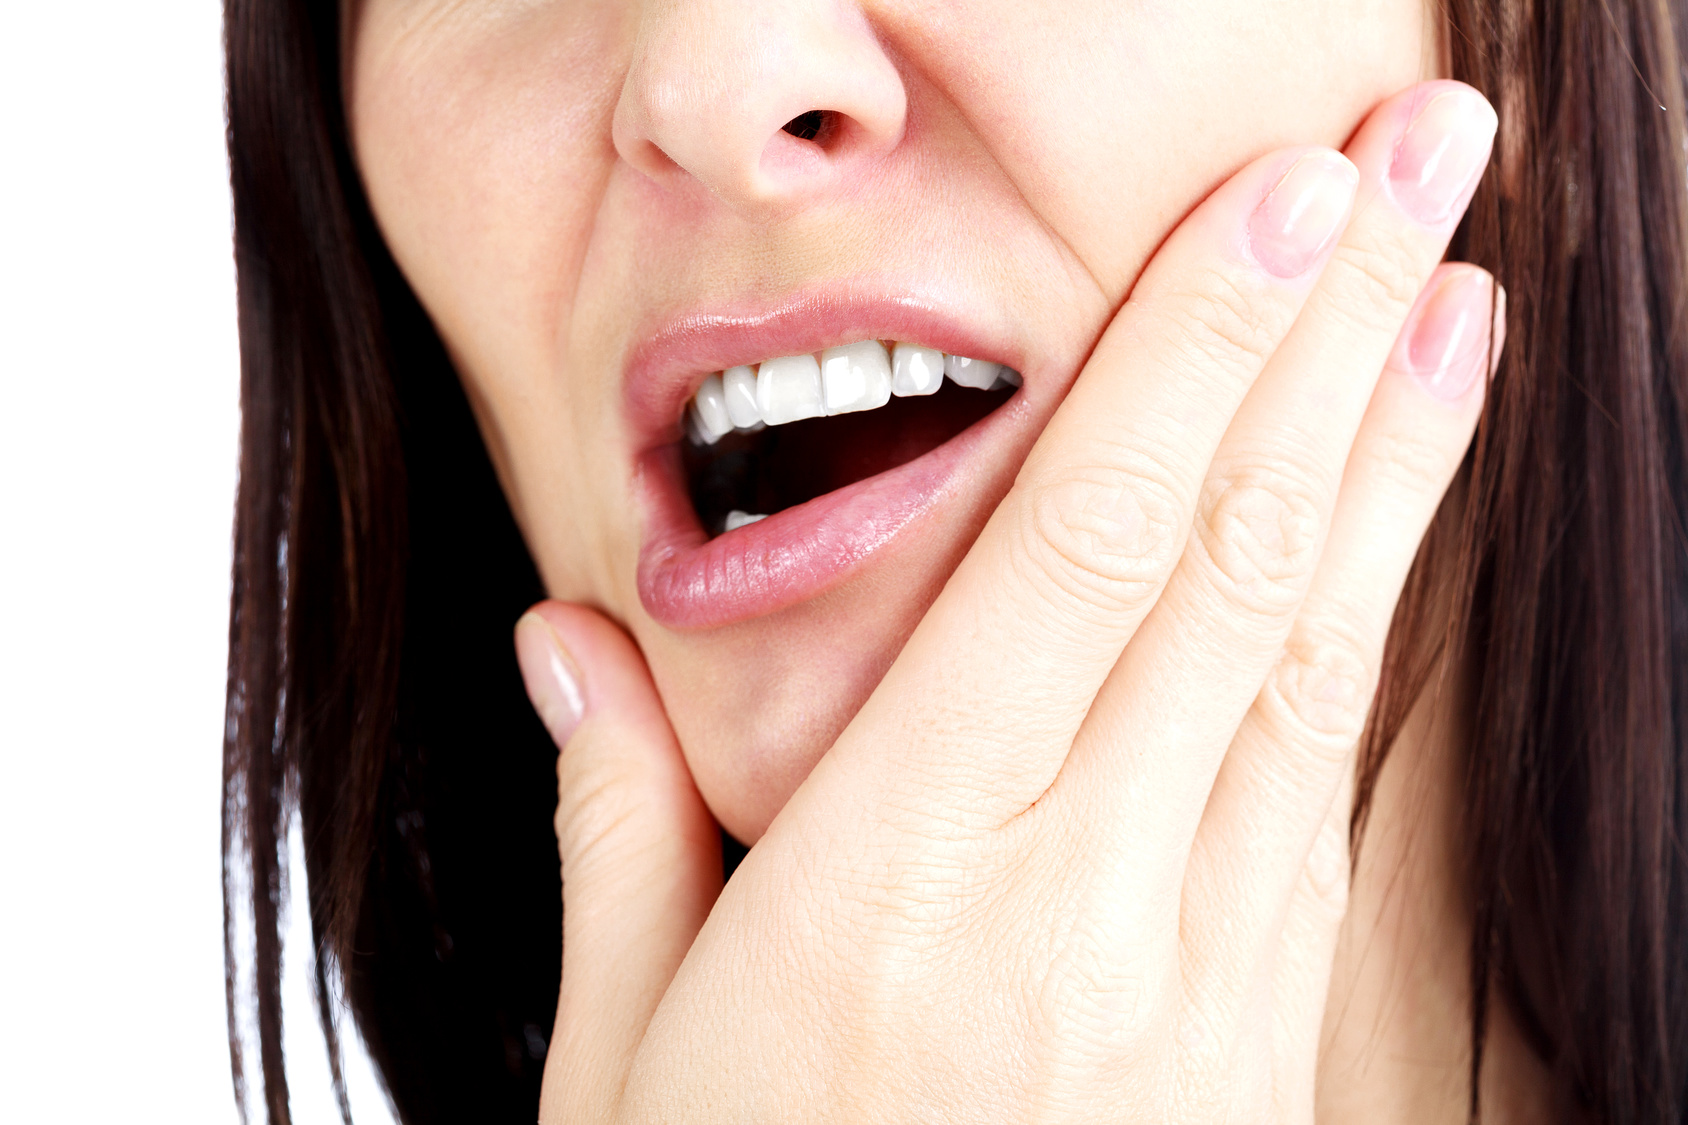 Holistic treatment of TMJ may be more effective